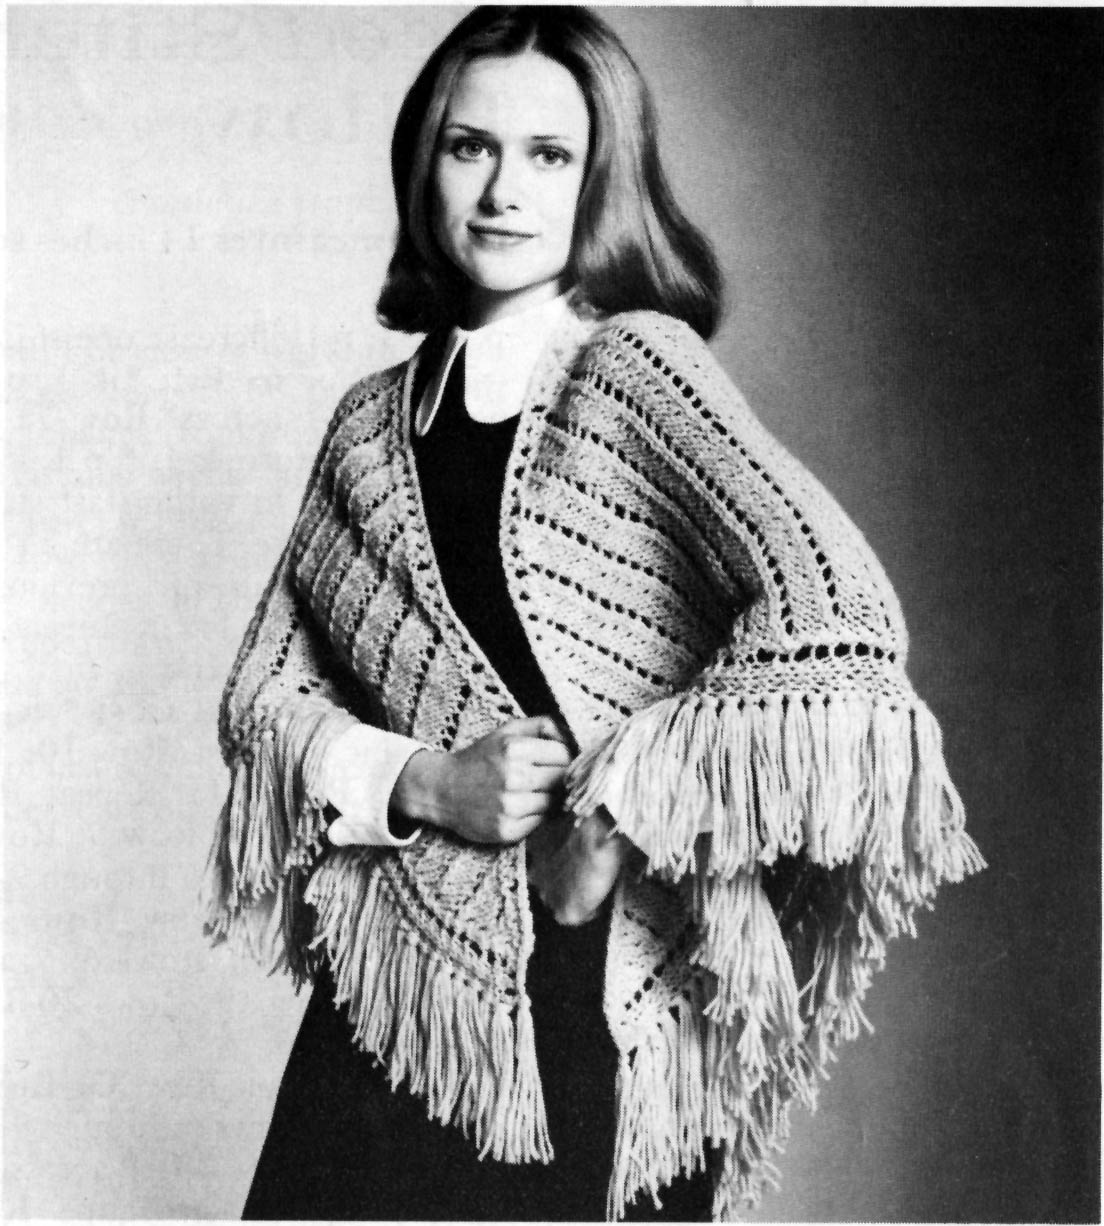 Vintage Shawl Knitting Patterns : Musings from Marilyn   Vintage 60s  Kate  Shawl Knitting Pattern